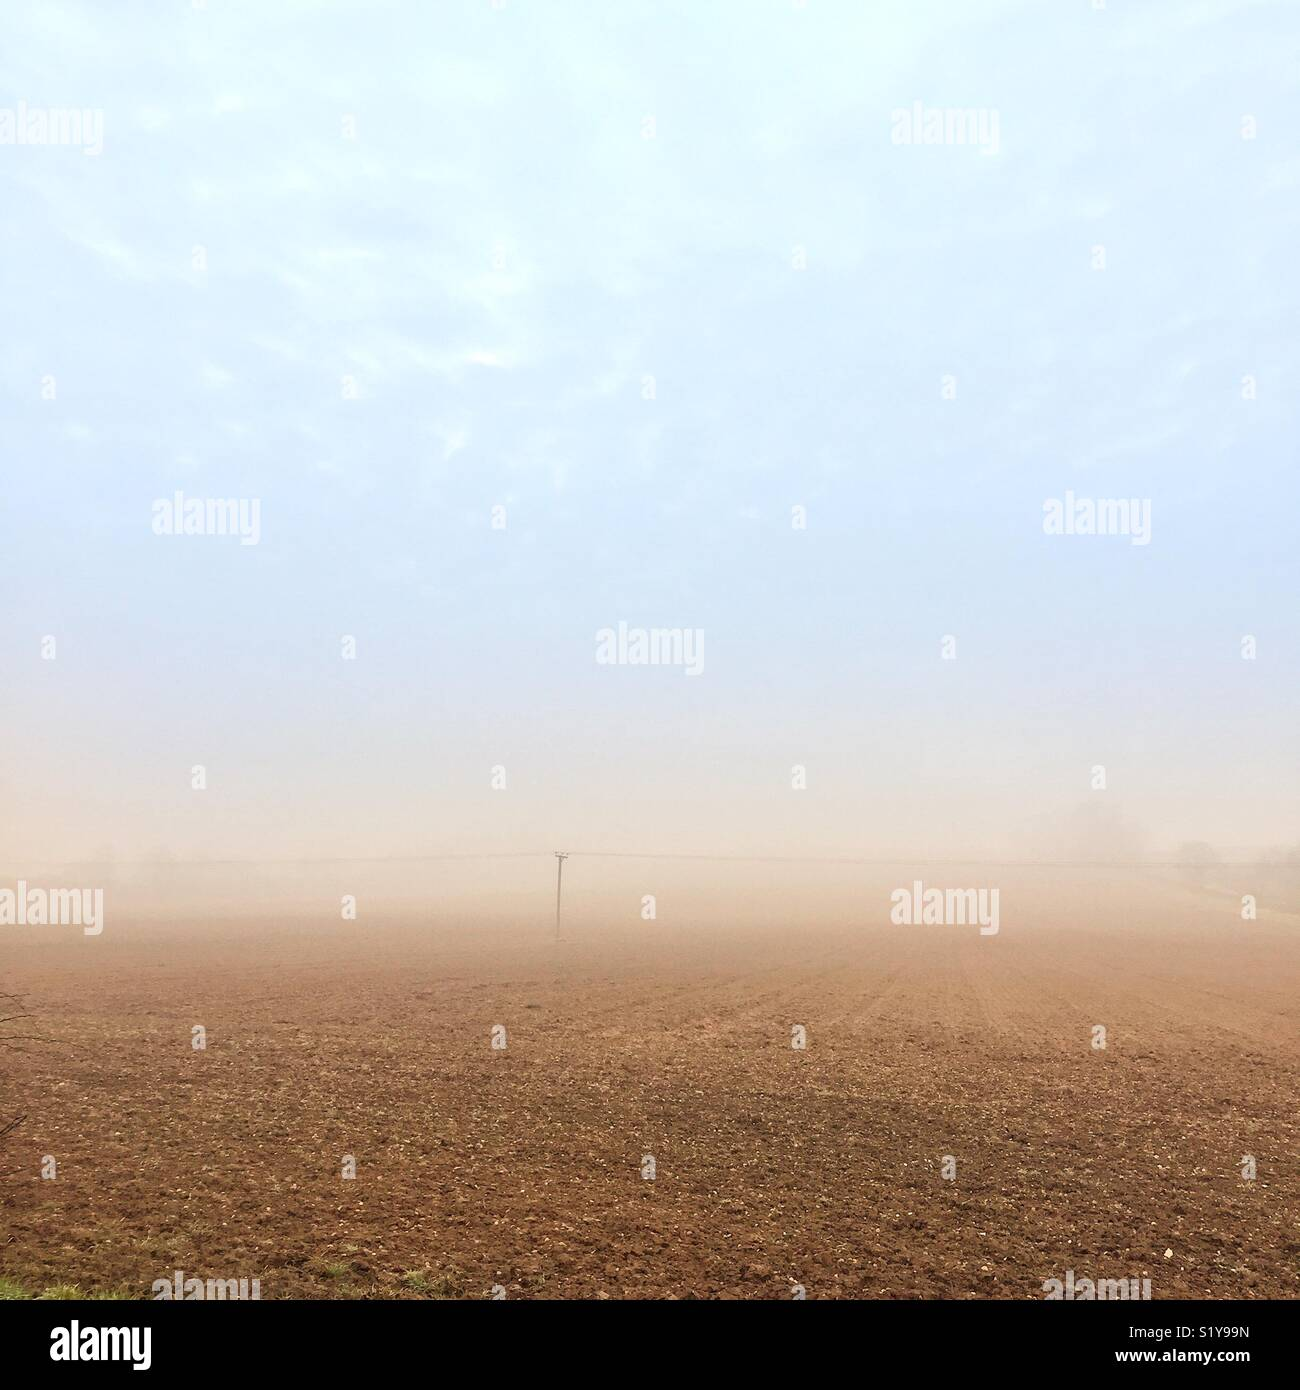 Overhead lines and pole in a foggy field. - Stock Image